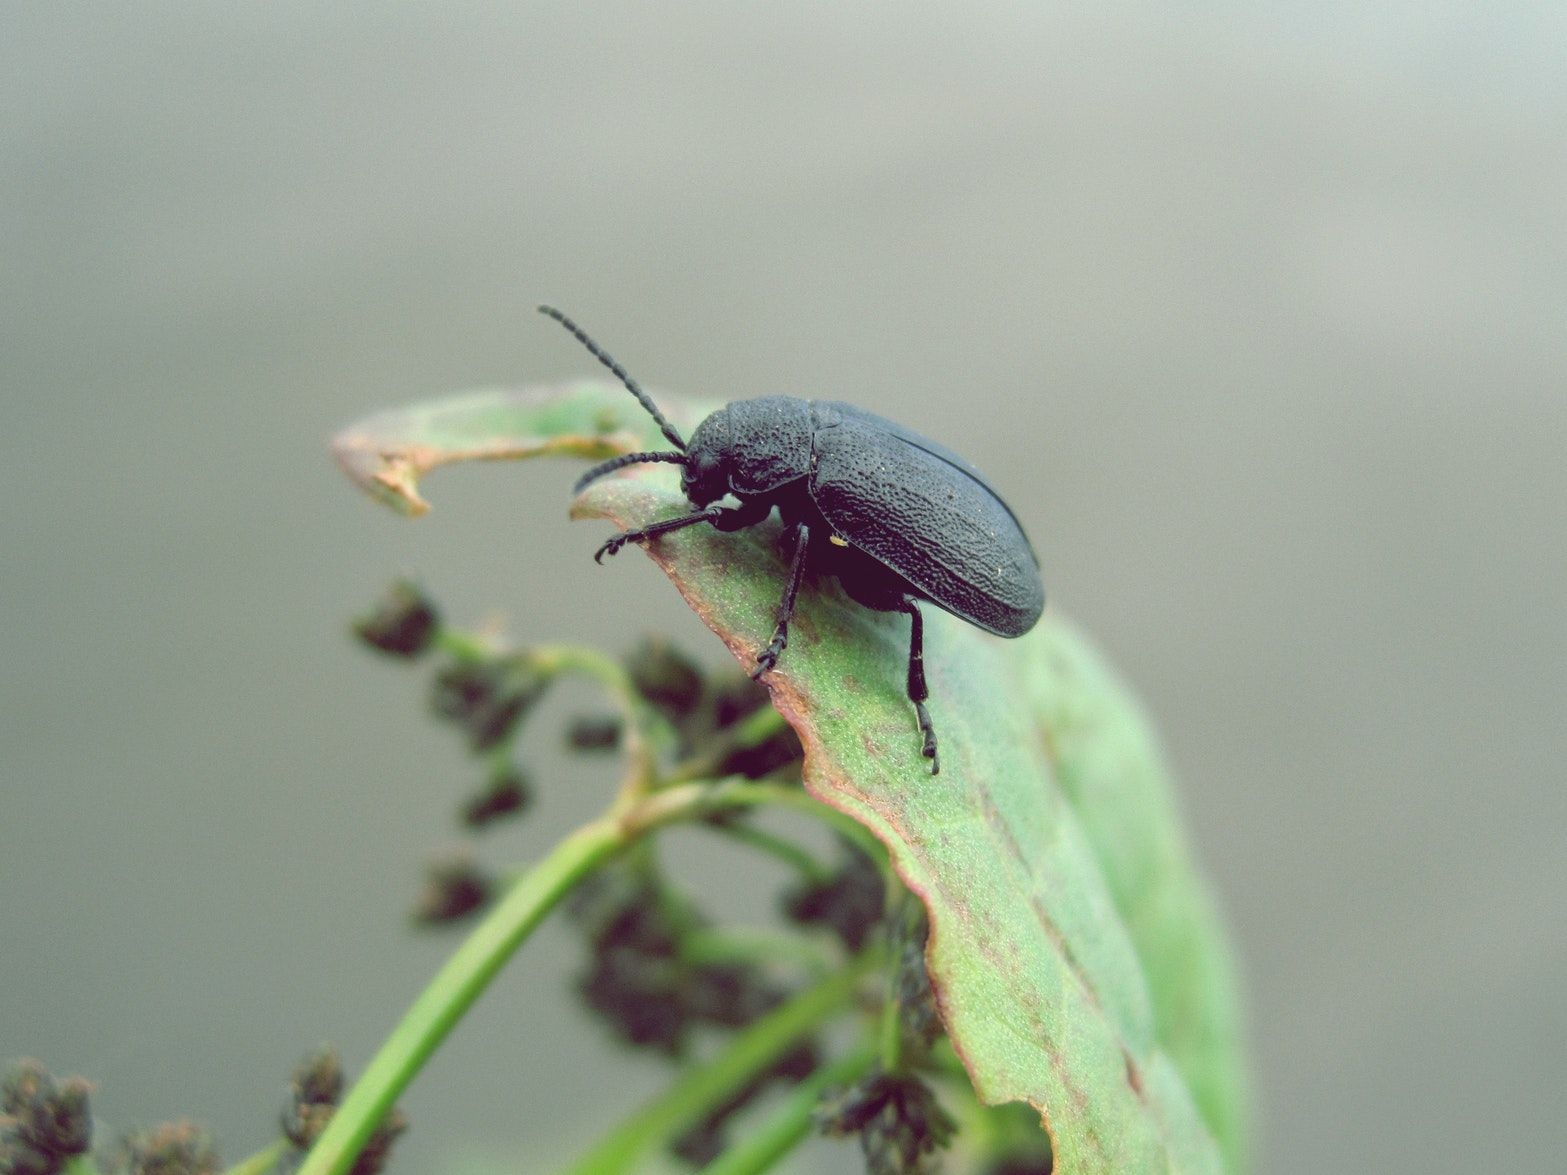 Facts About Bed Bugs Insect Photography Pet Safe Pictures Of